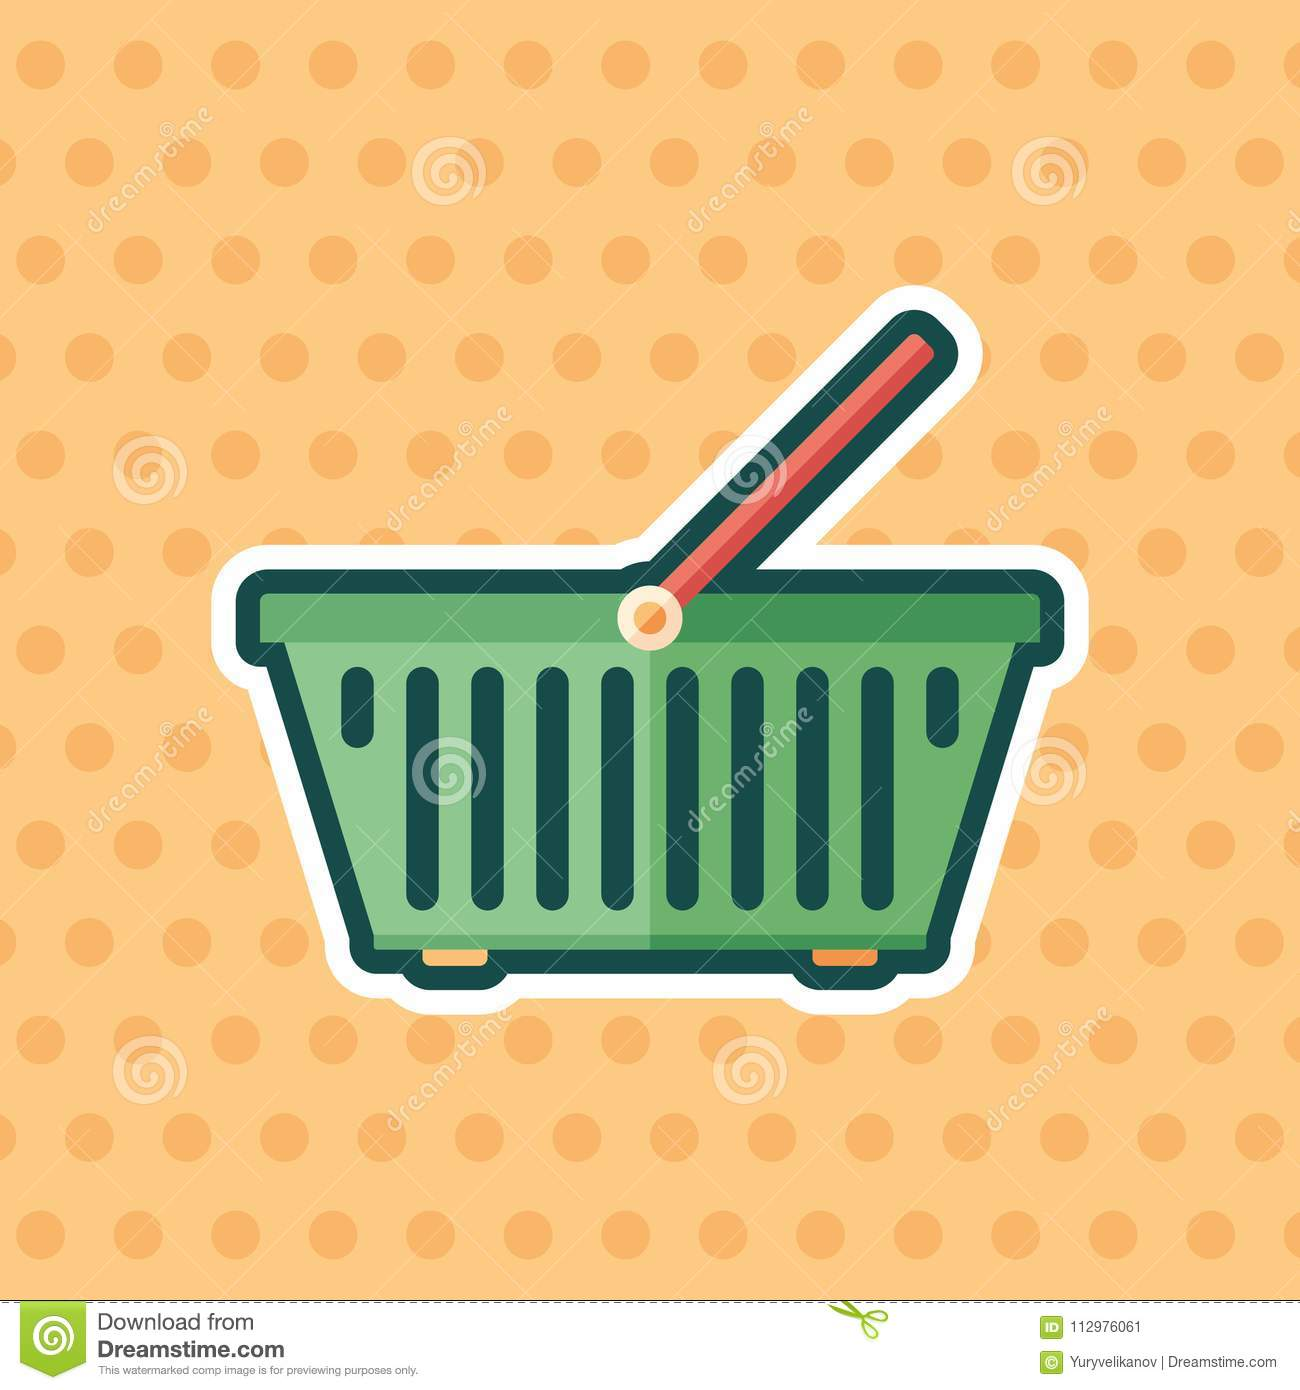 Food basket sticker flat icon with color background.